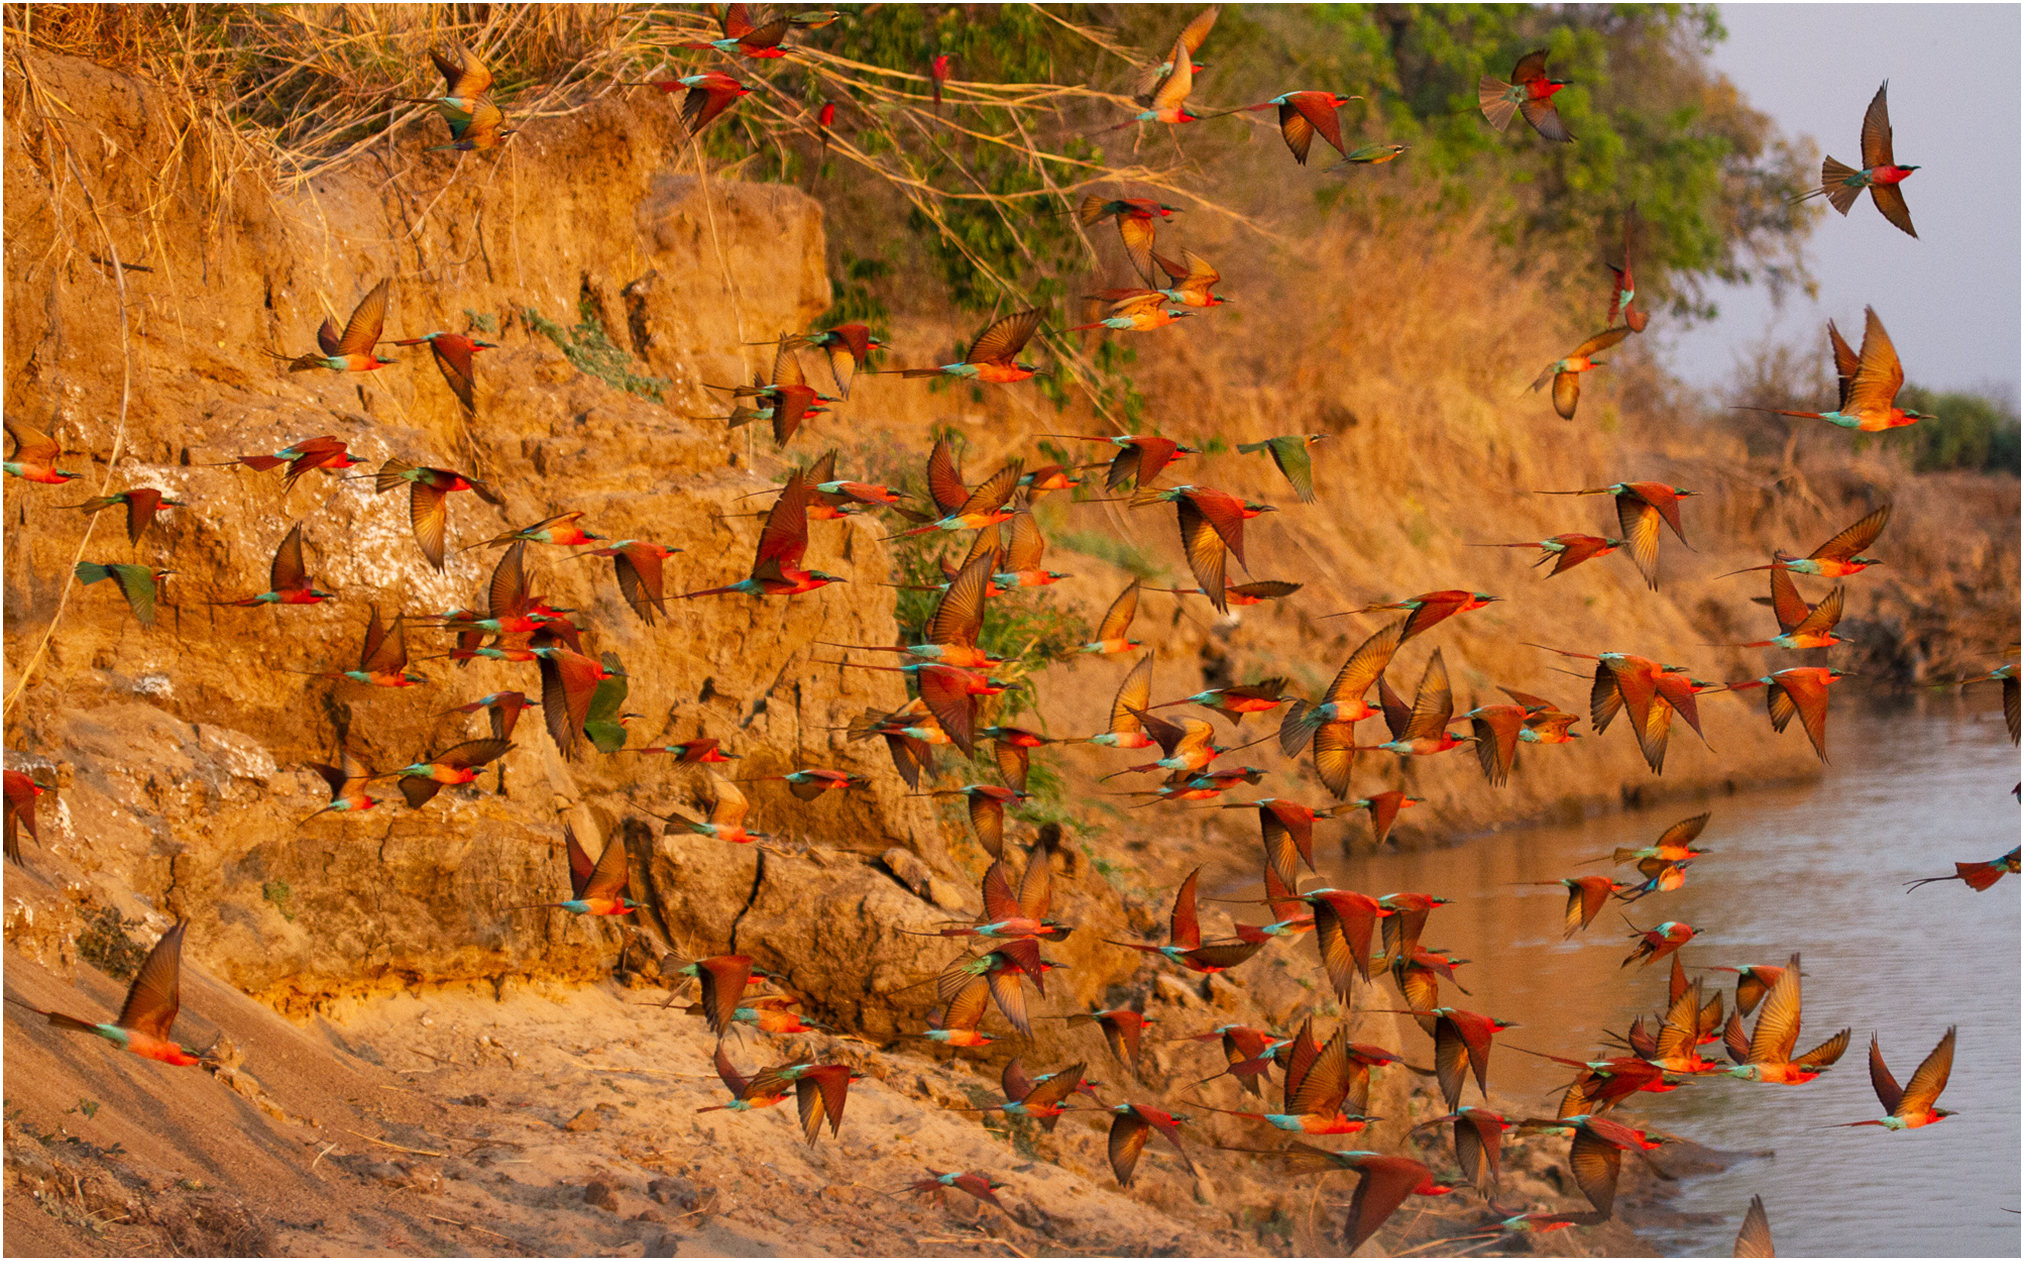 Carmine Bee Eaters from Tafika, South Luangwa, Zambia #remoteafrica